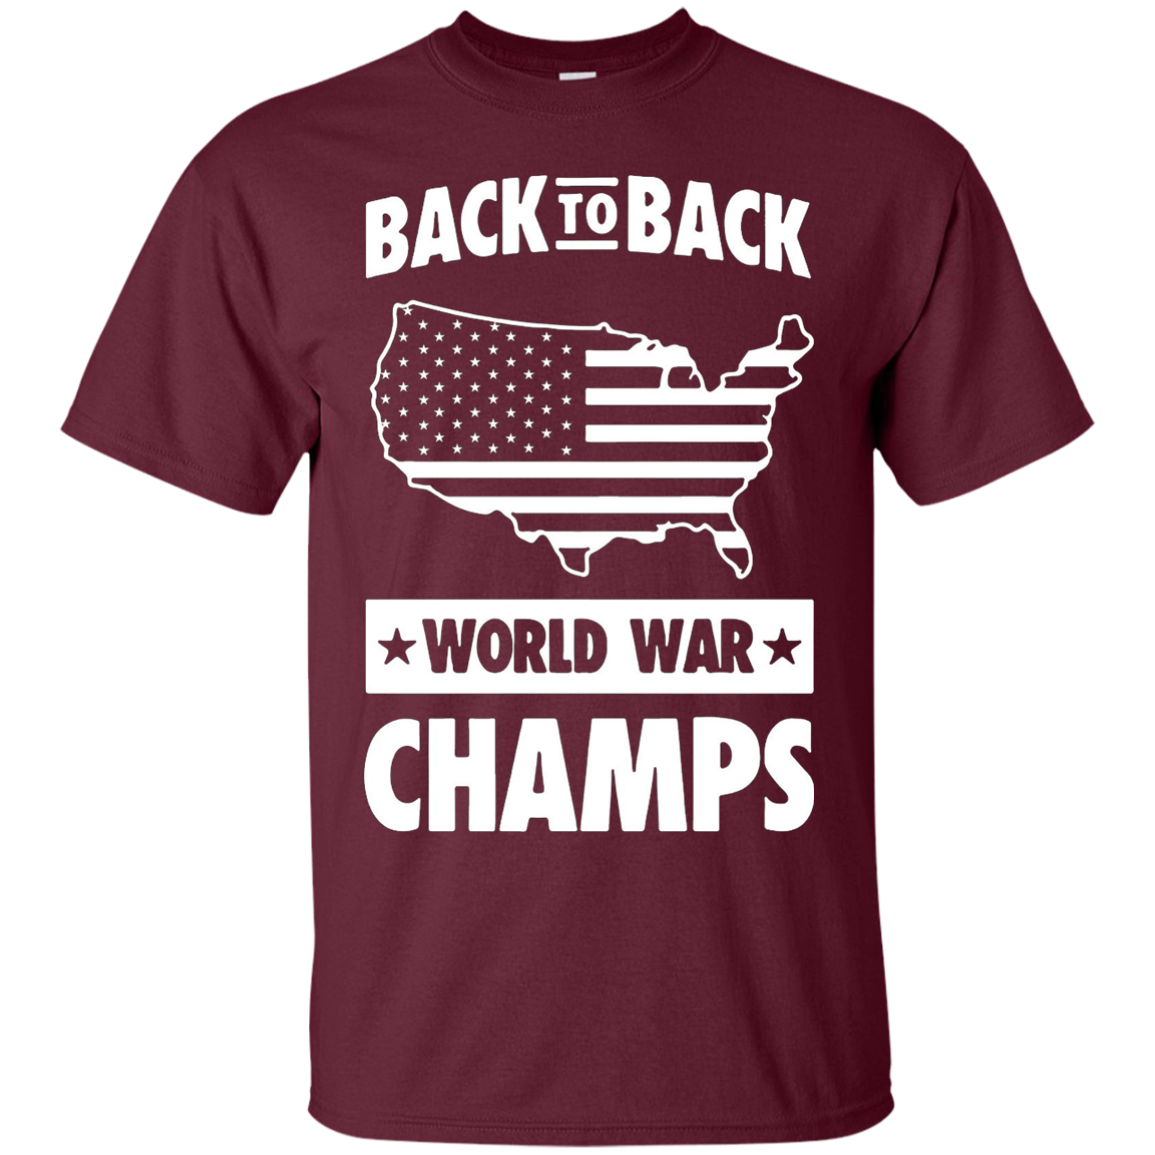 BACK TO BACK WORLD WAR CHAMPS T-Shirts